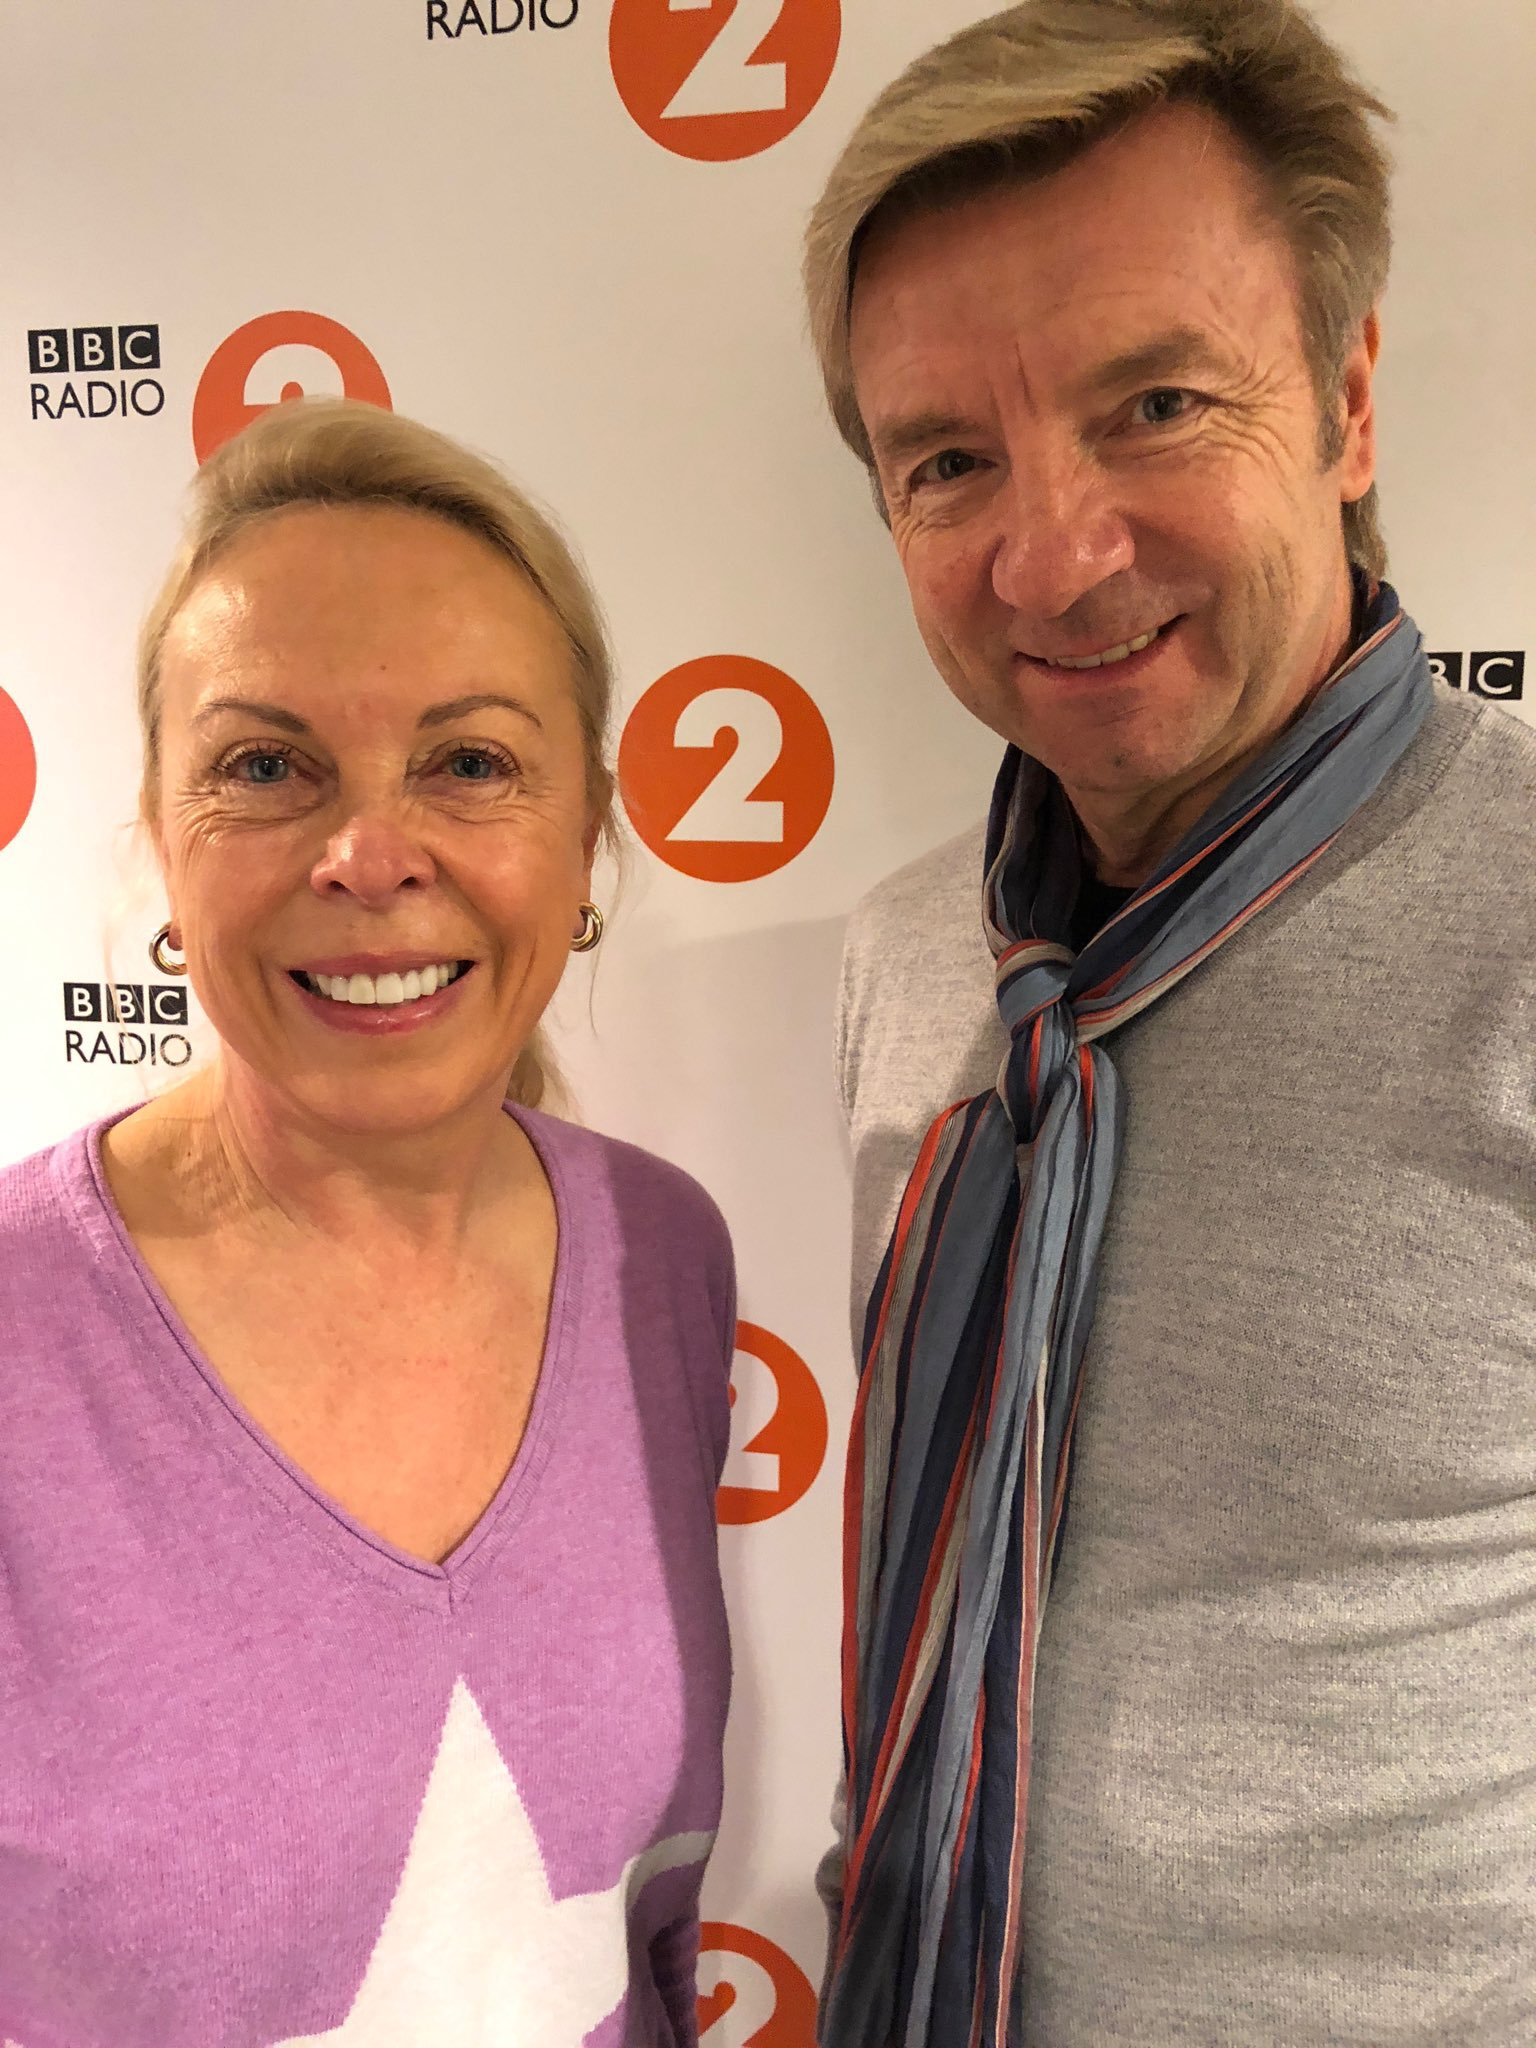 About to go on Radio 2 with Chris Evans 😊 https://t.co/gIeHhXLXpq